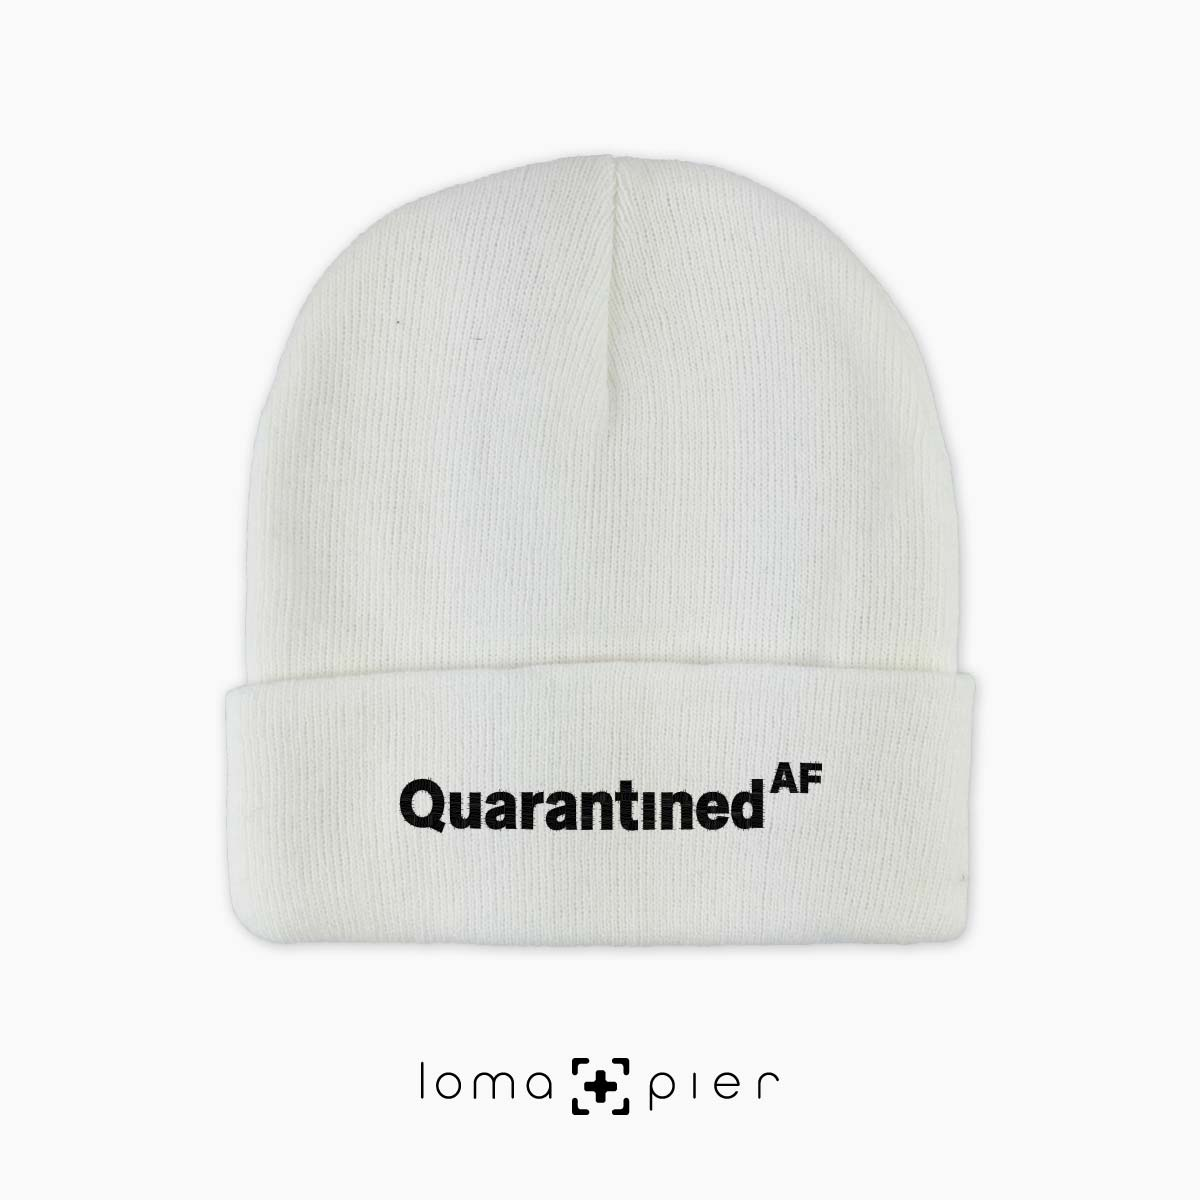 QUARANTINED AF cuffed beanie by lam and pier het shop